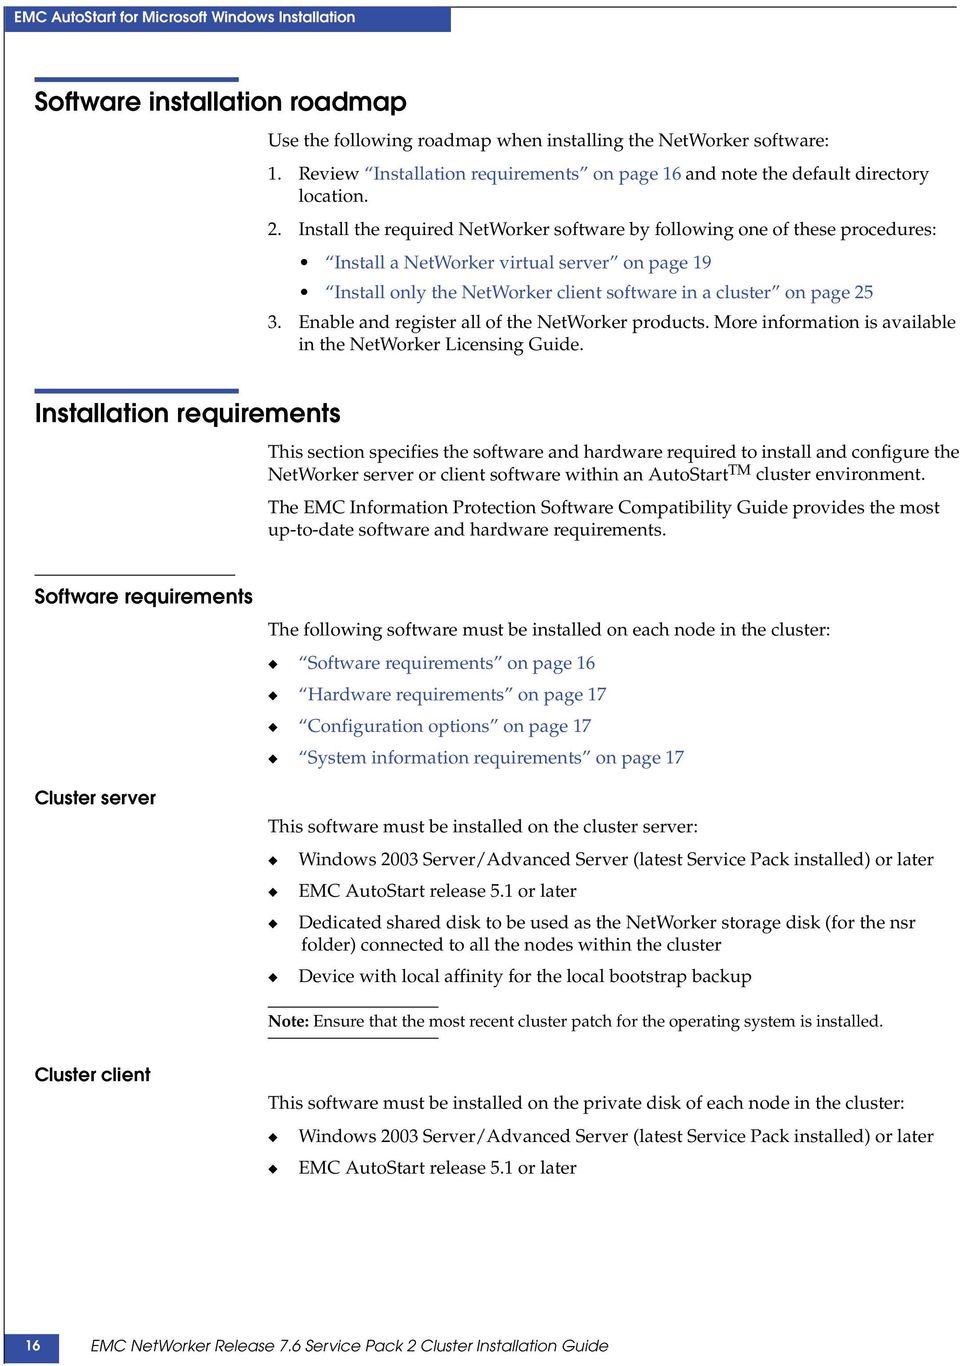 Emc networker release 7. 6 service pack 3 administration guide.